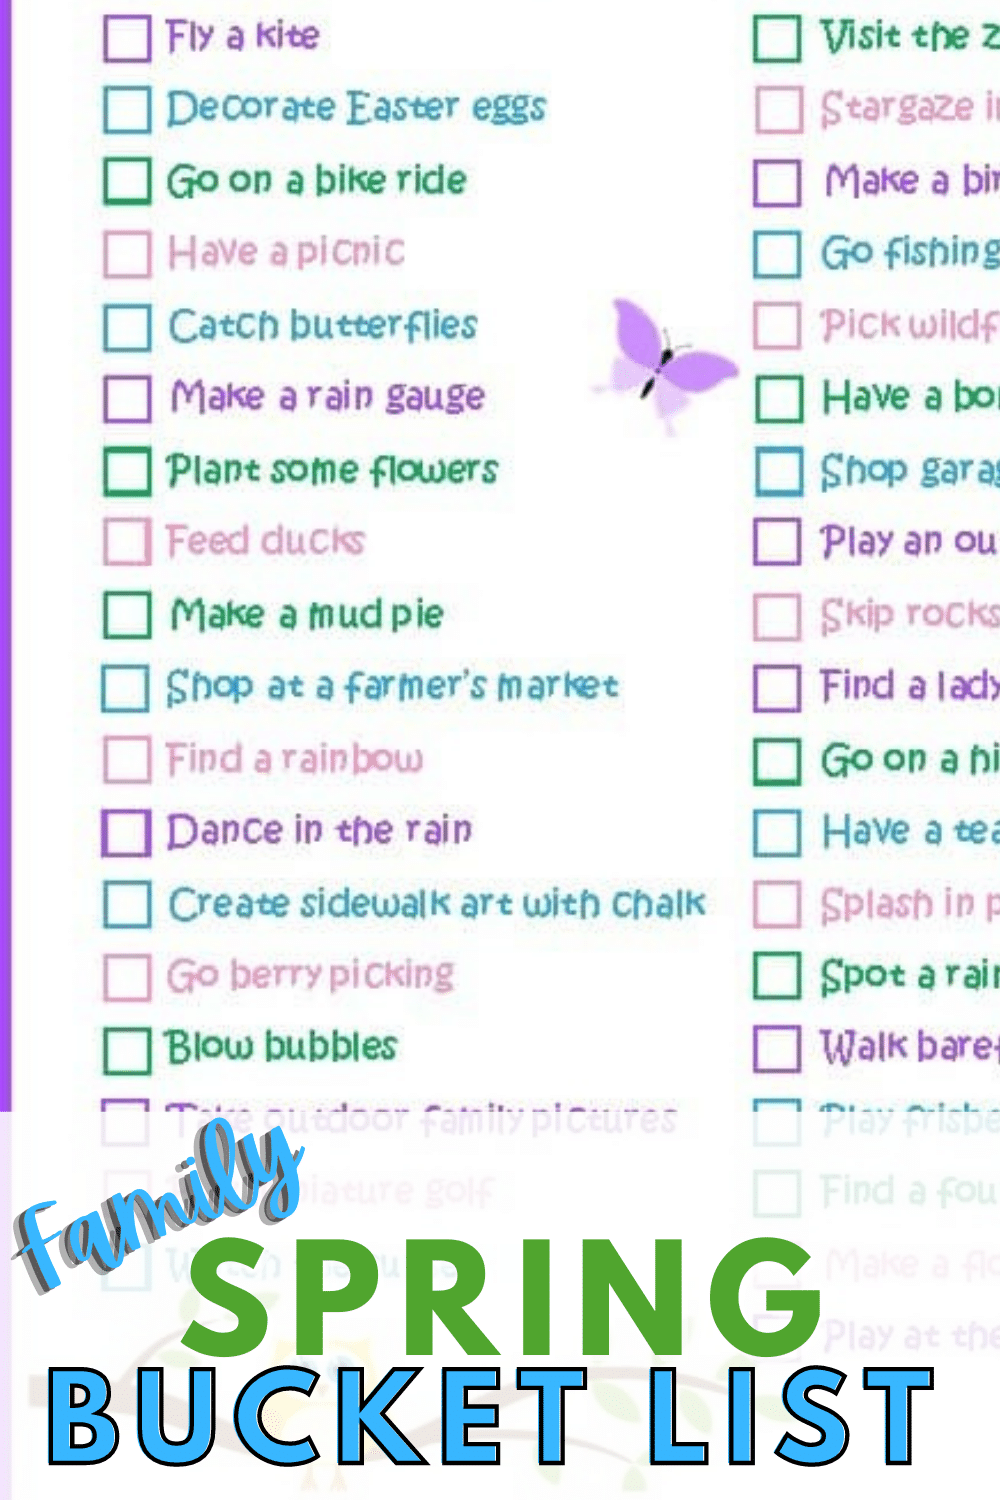 This Spring Bucket List is full of fun ideas the whole family will enjoy so you can get outdoors and enjoy the beautiful weather. #bucketlist #spring #outdooractivities #forkids via @wondermomwannab